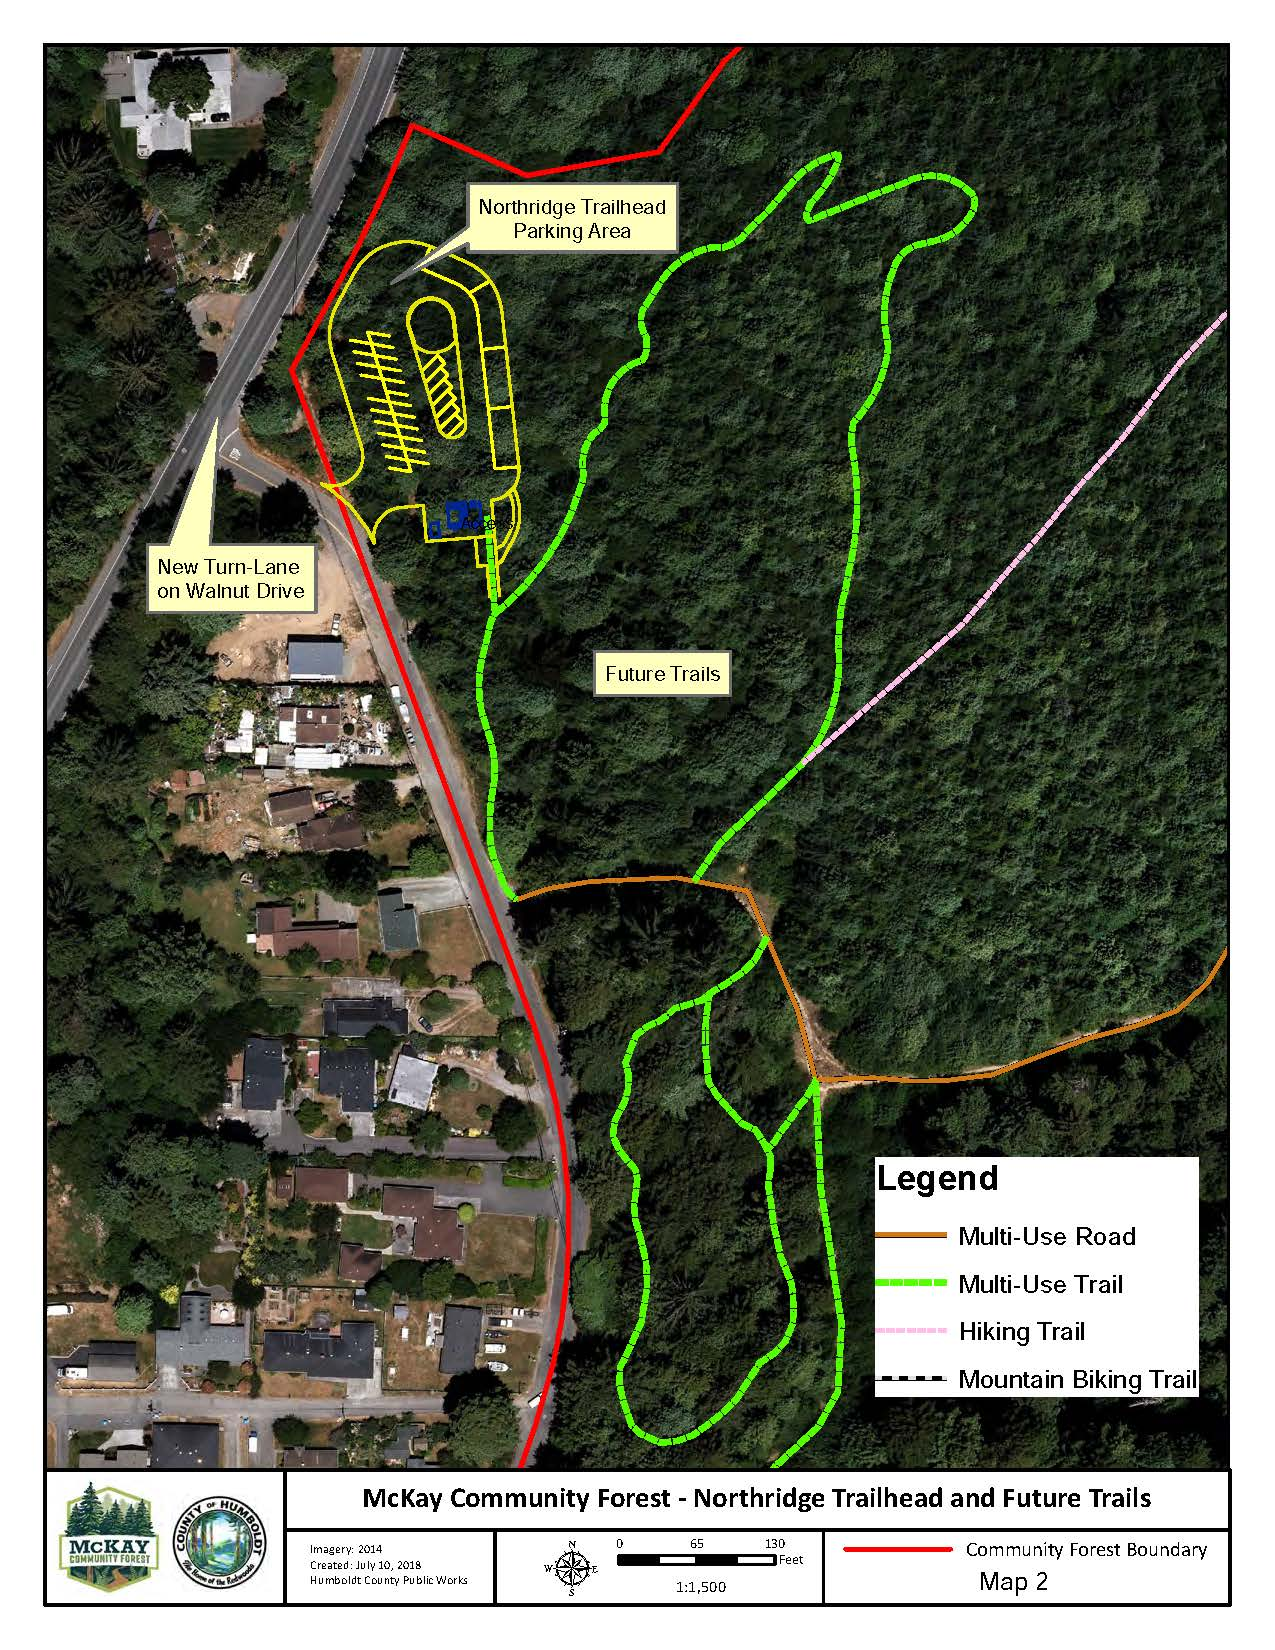 McKay Community Forest Map showing drawing of future parking lot off Walnut Drive and future trails